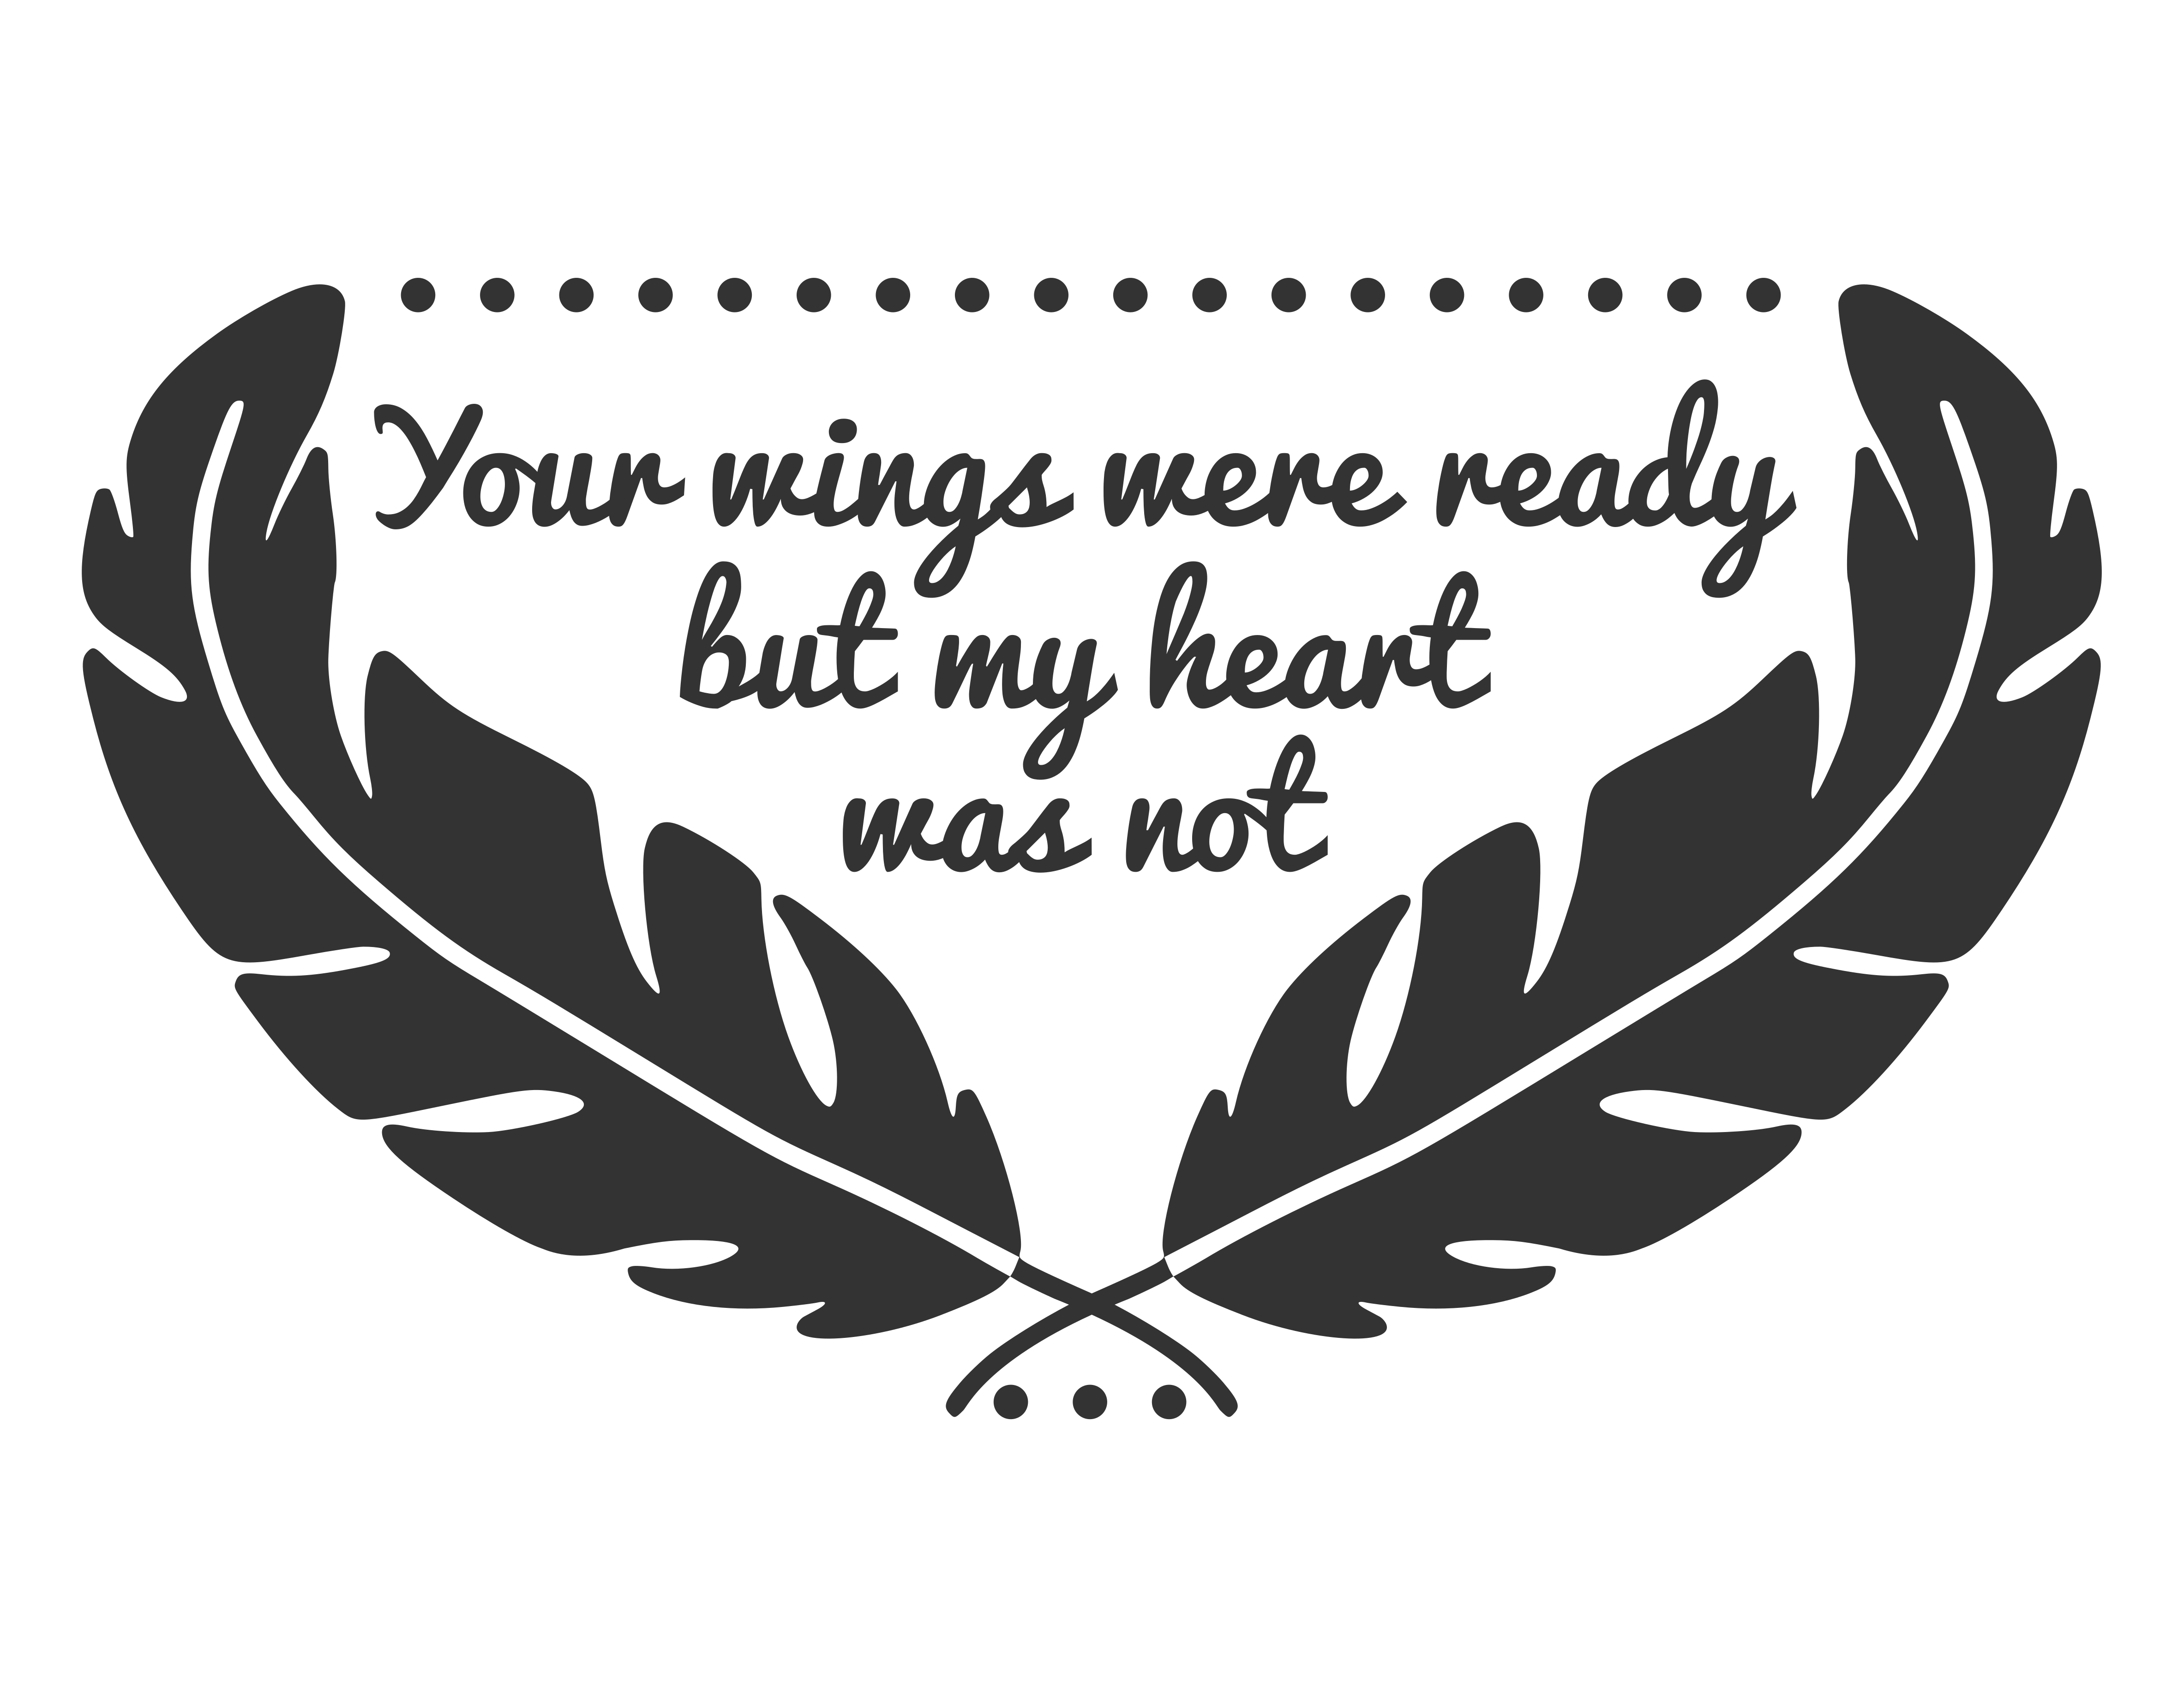 Your wings were ready but our heart was not clipart banner black and white library Your wings were ready svg, your wings were ready but our hearts were not  svg, your wings were ready but my heart was not svg, svg files, svg banner black and white library